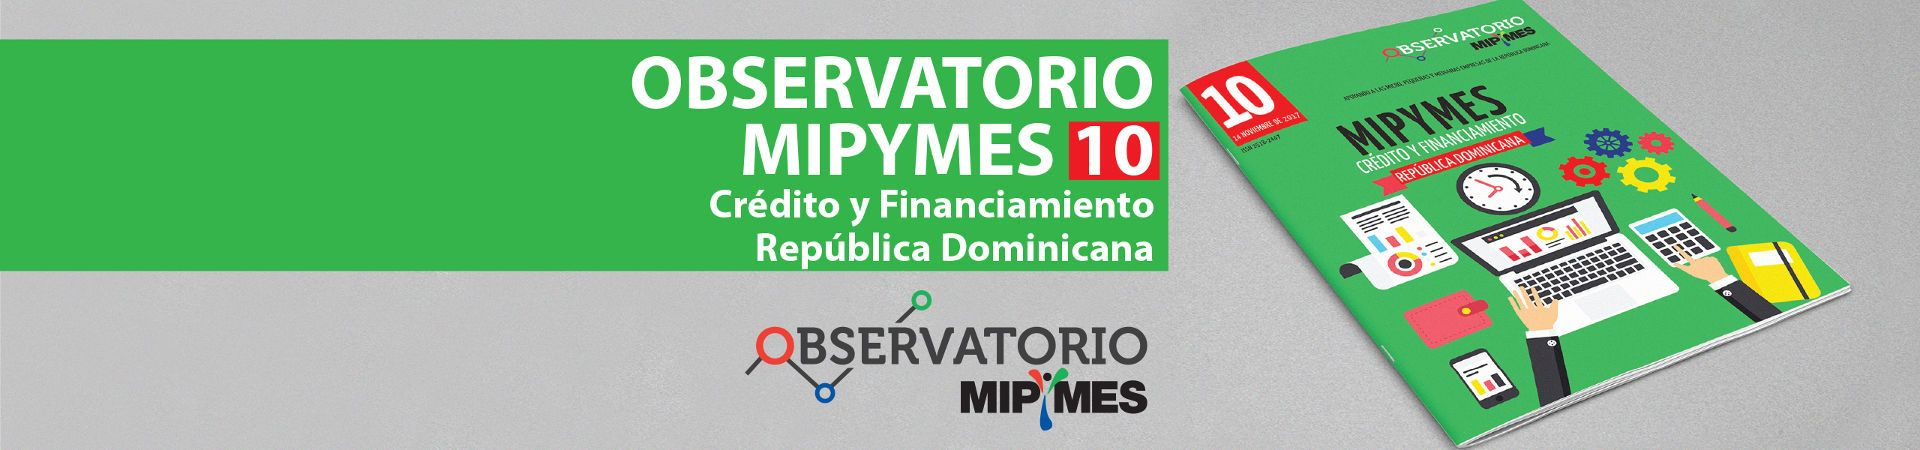 Observatorio Mipymes 10